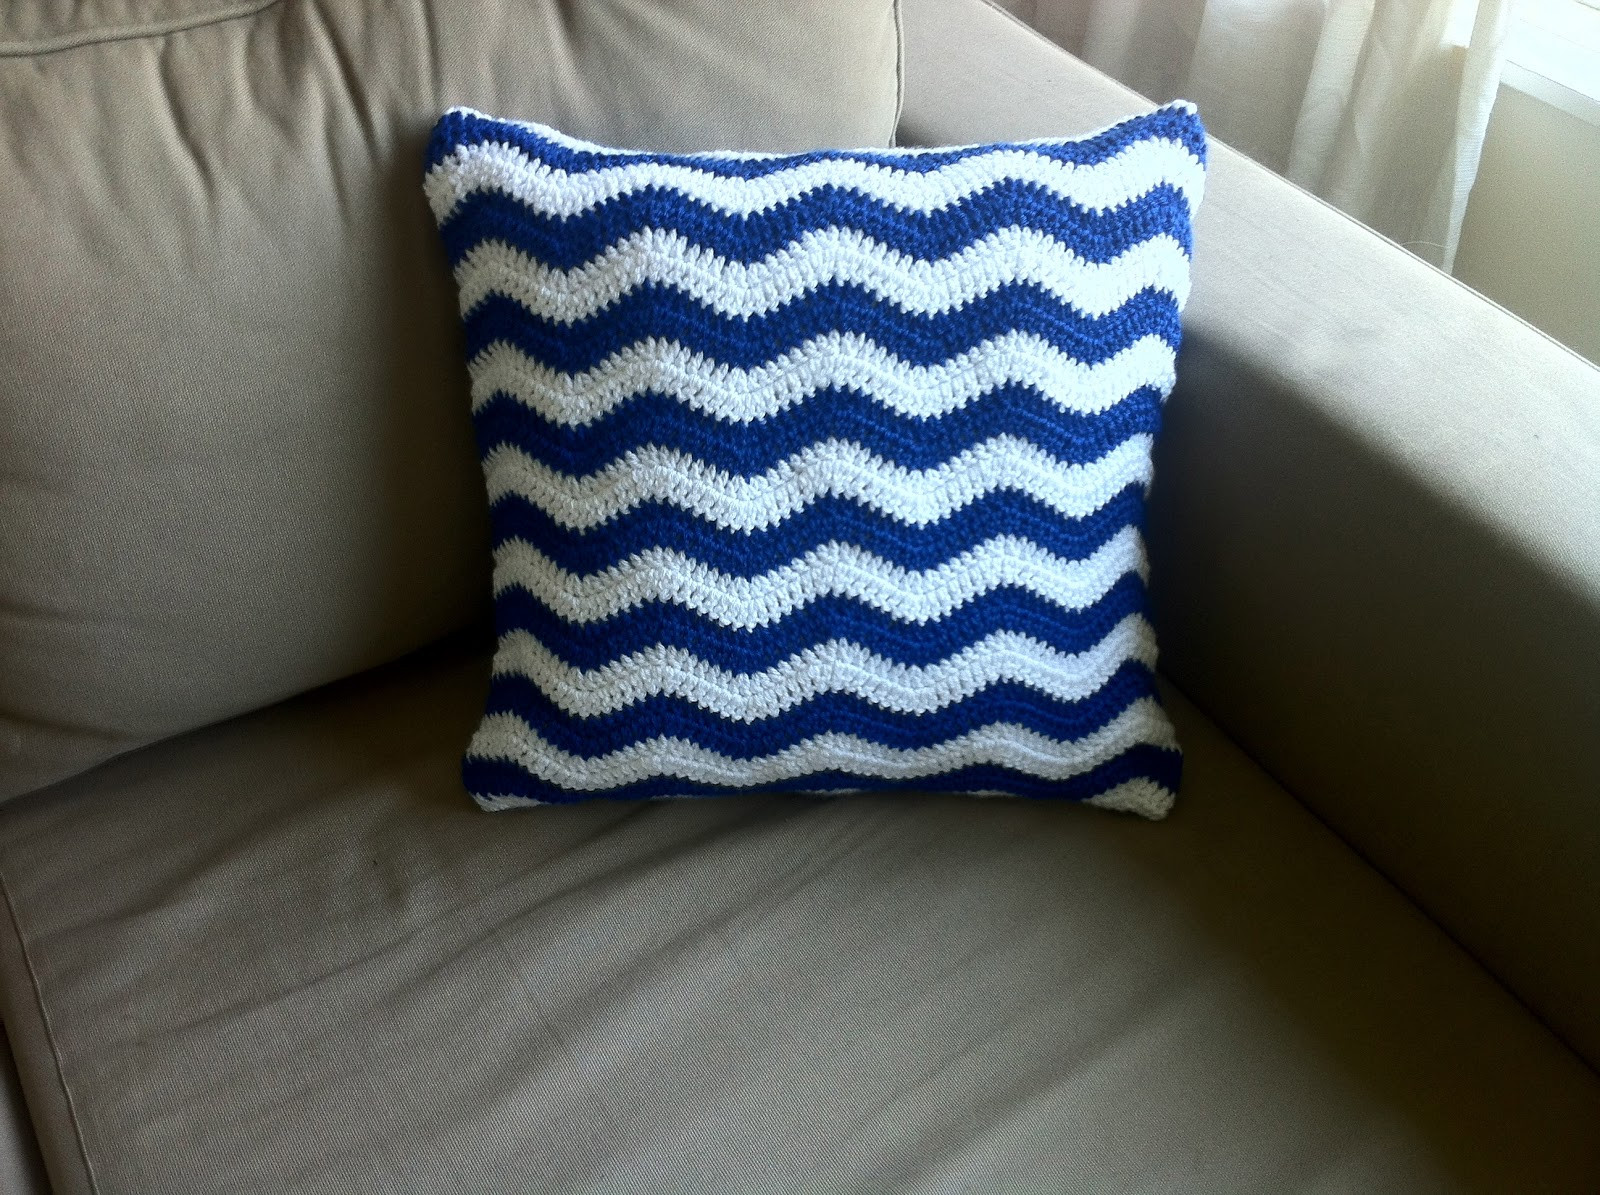 Crochet Pillow Cover Pattern Lovely the Way I Crochet Crochet Ripple Cushion Cover Free Pattern Of Lovely 47 Images Crochet Pillow Cover Pattern